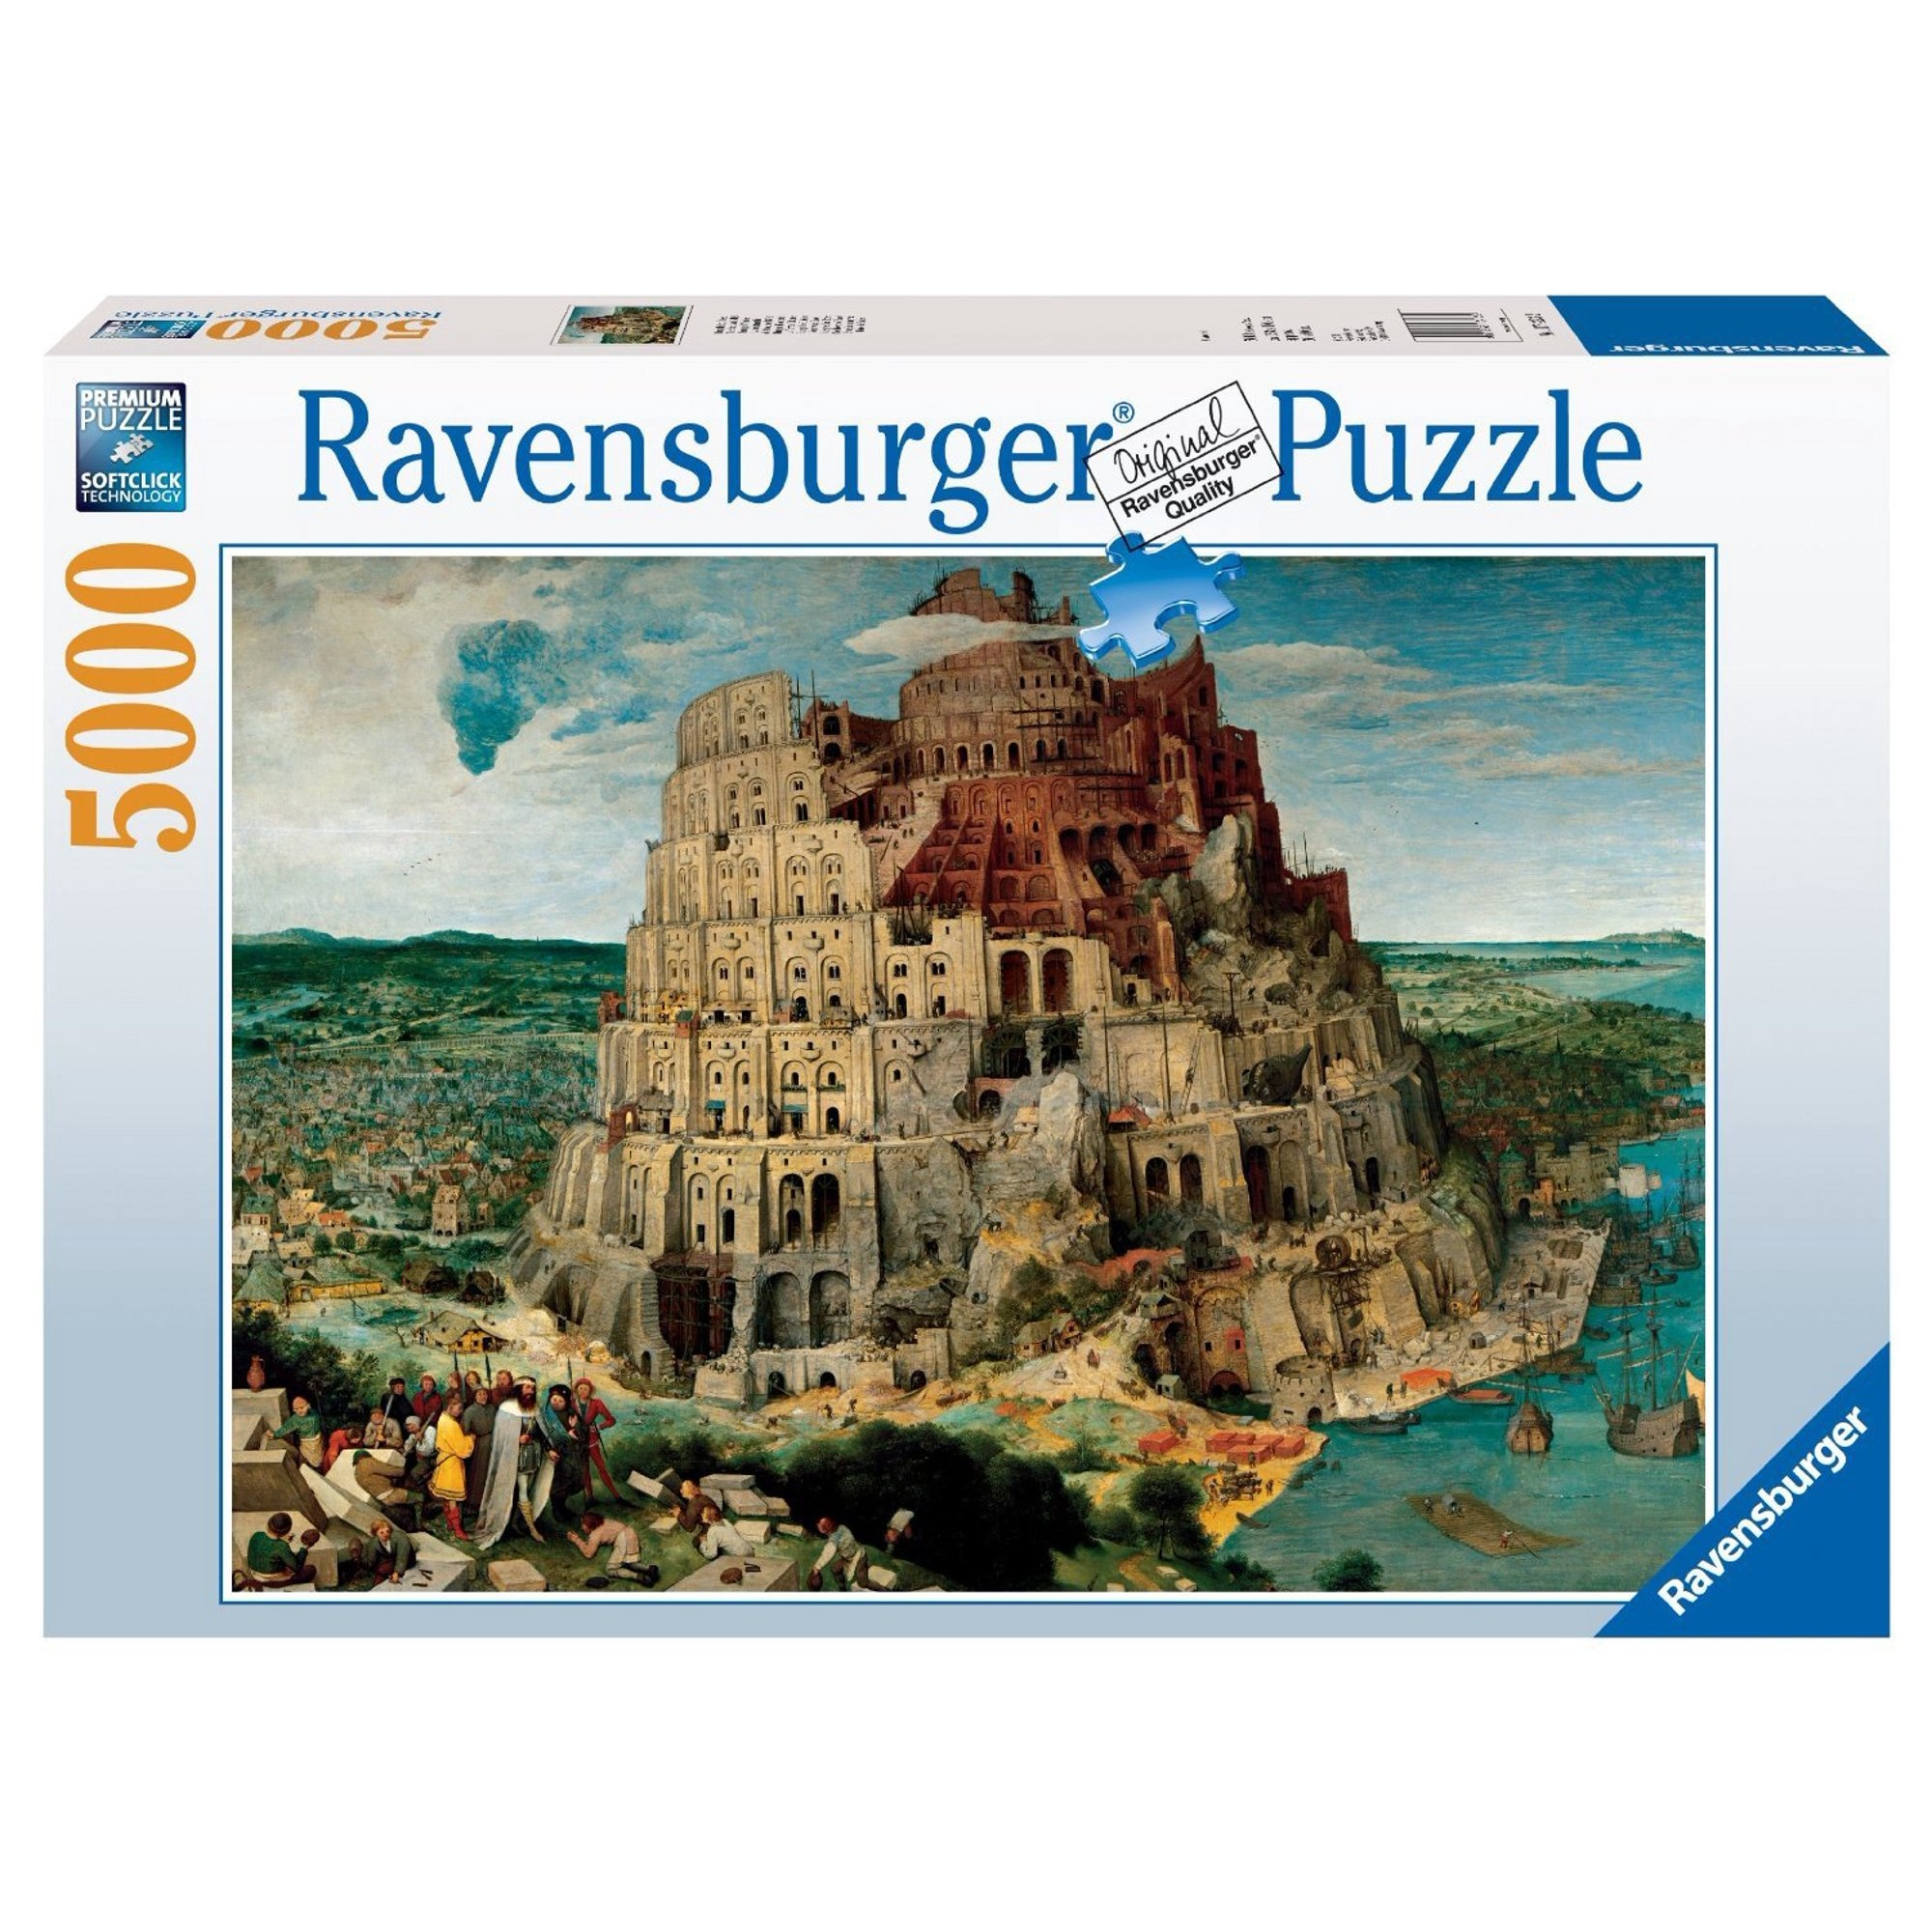 Ravensburger RV5000 TOWER OF BABEL